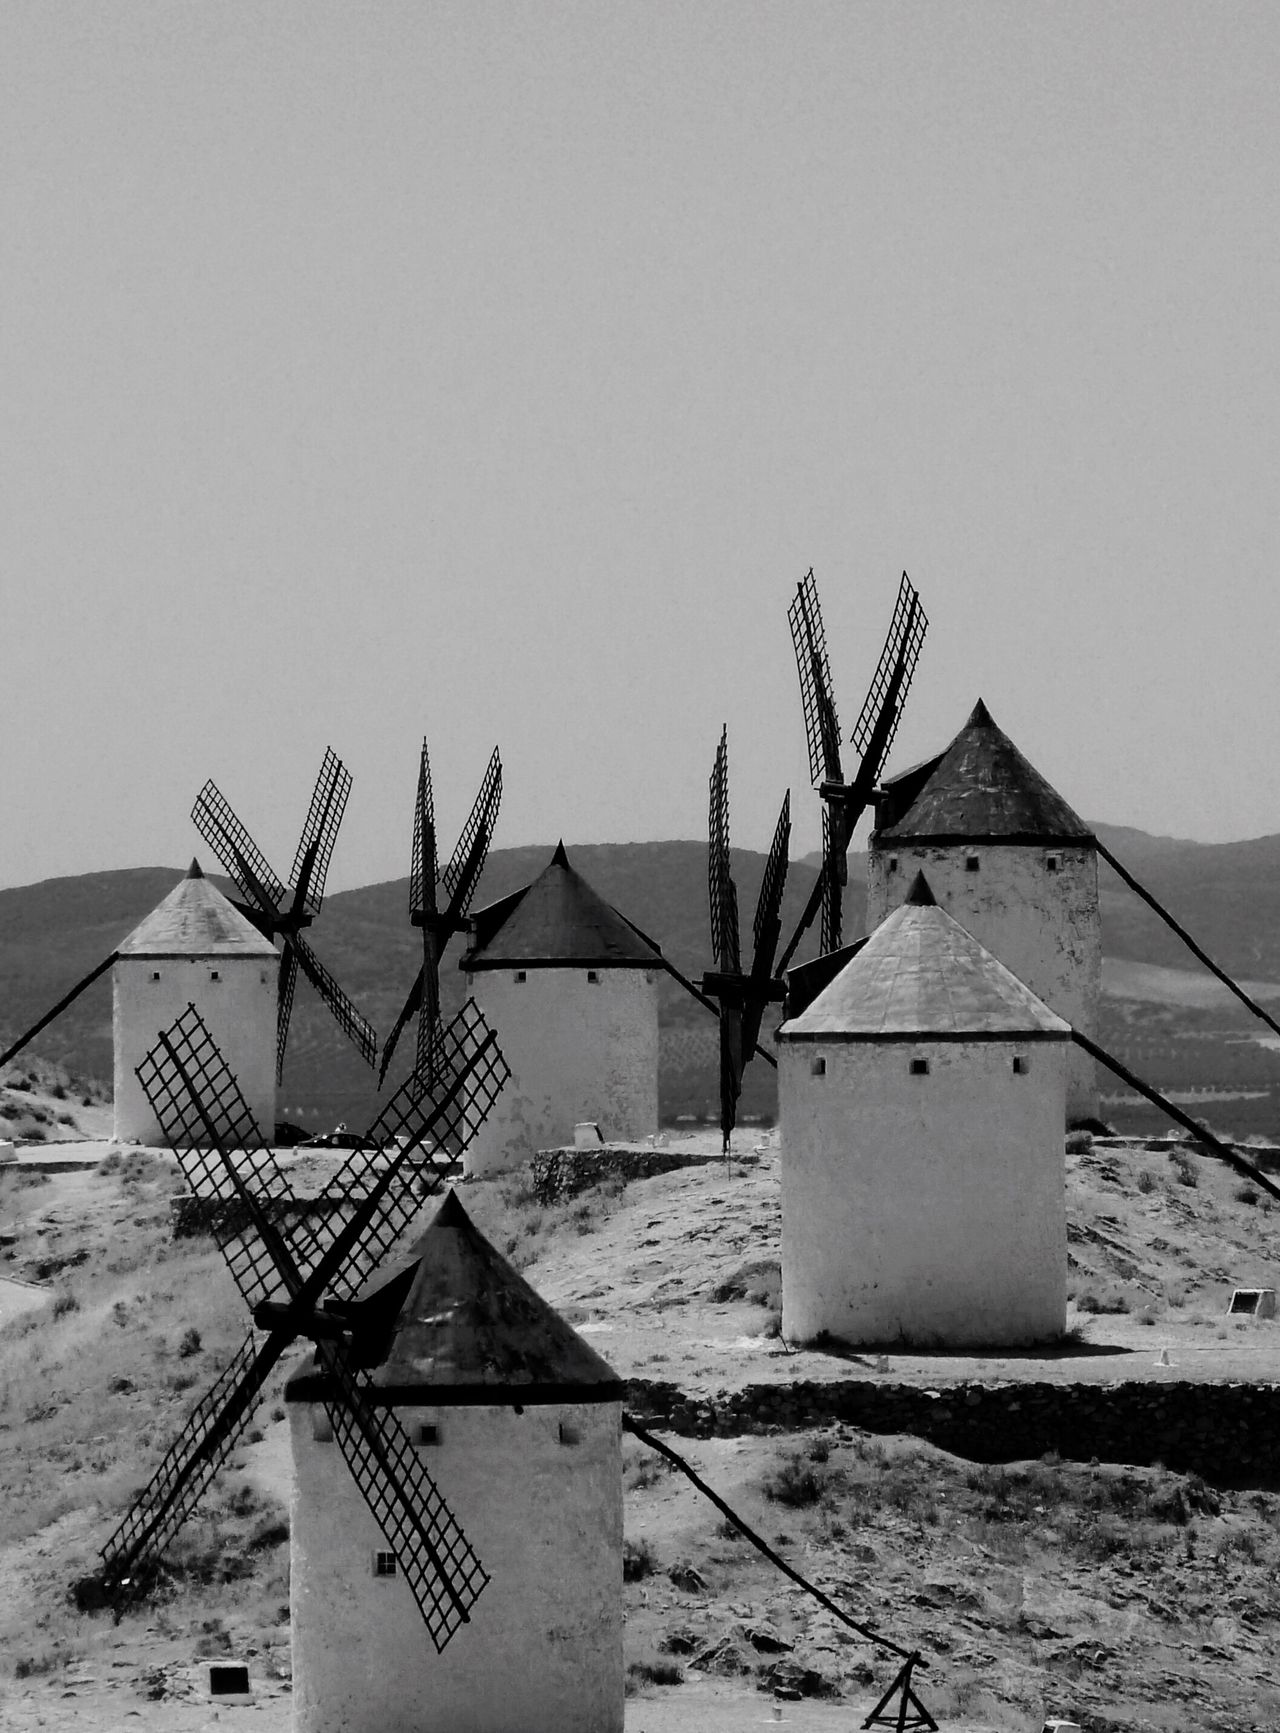 Renewable Energy Architecture No People Outdoors Windmills Consuegra Spain La Mancha Black And White Don Quixote Land Symbols Of Spain Old World Old Castile CastillaLaMancha Medieval Structures